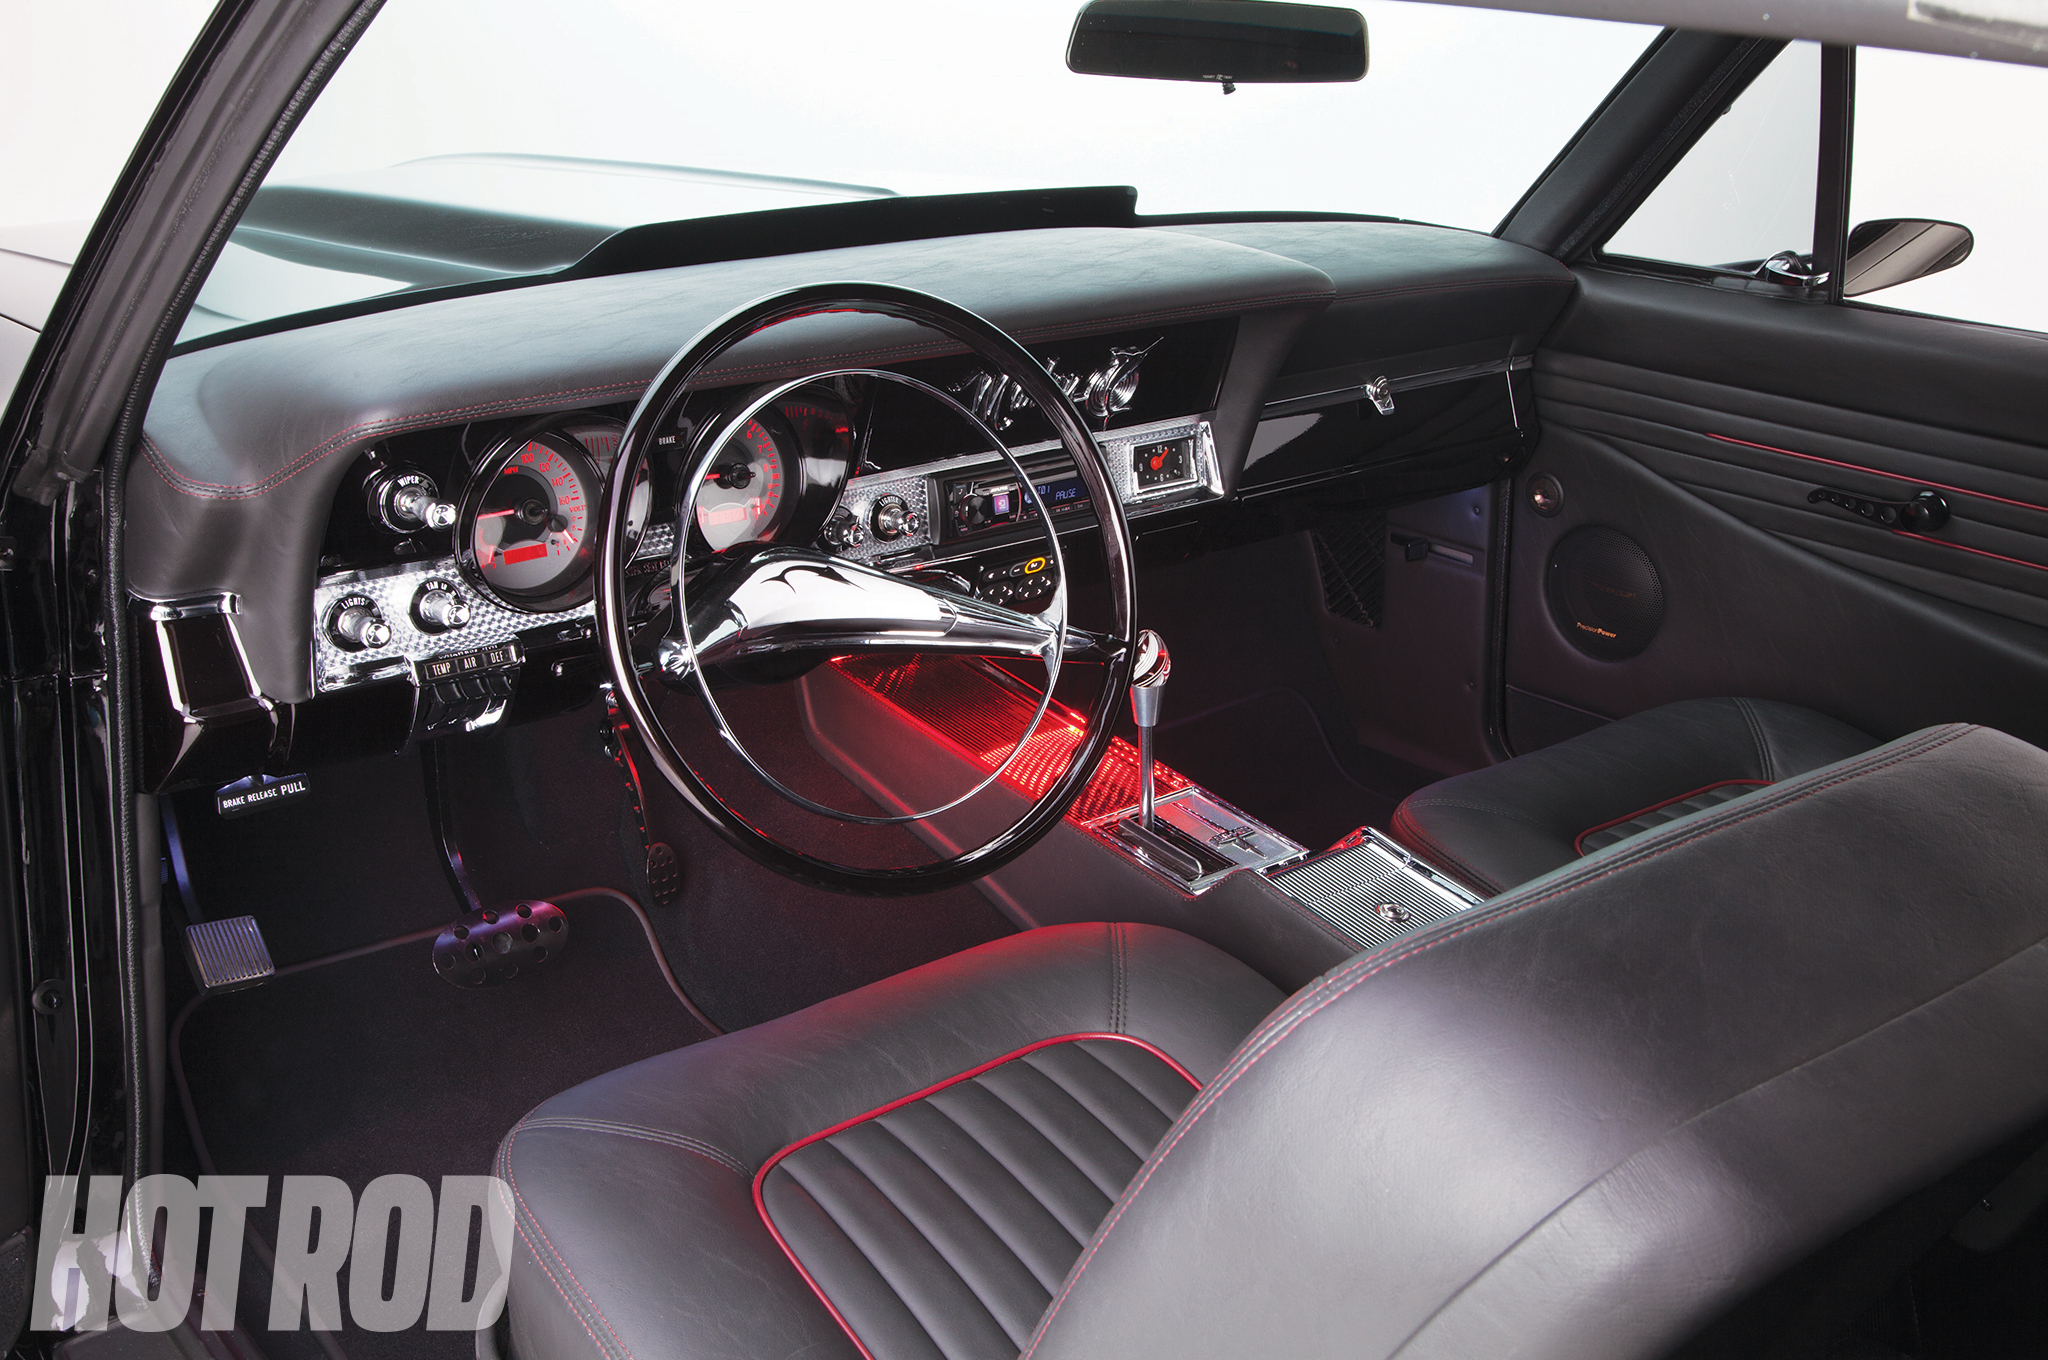 The dash sheetmetal is factory, although now it's filled with Dakota Digital custom analog gauges. A 1954 Pontiac steering wheel was cut down to 15-inch diameter.